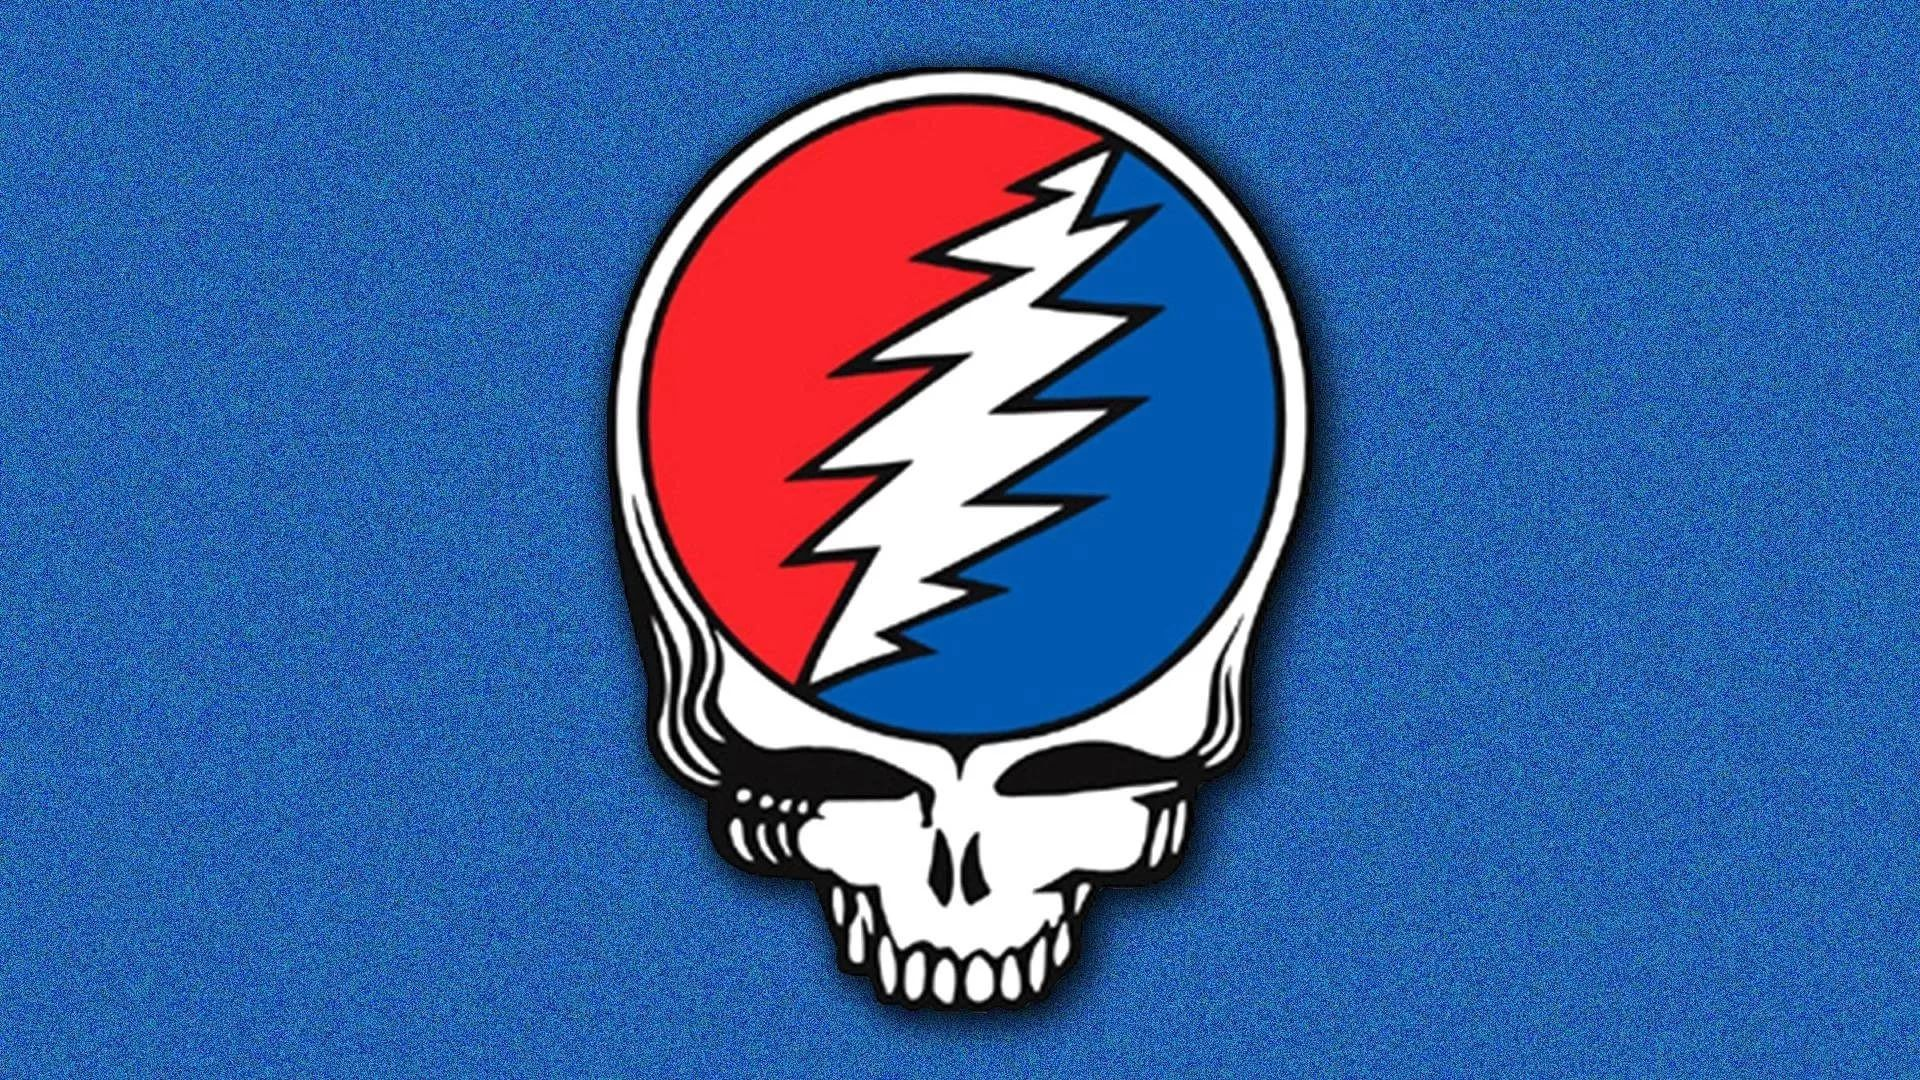 Grateful Dead download free wallpaper image search